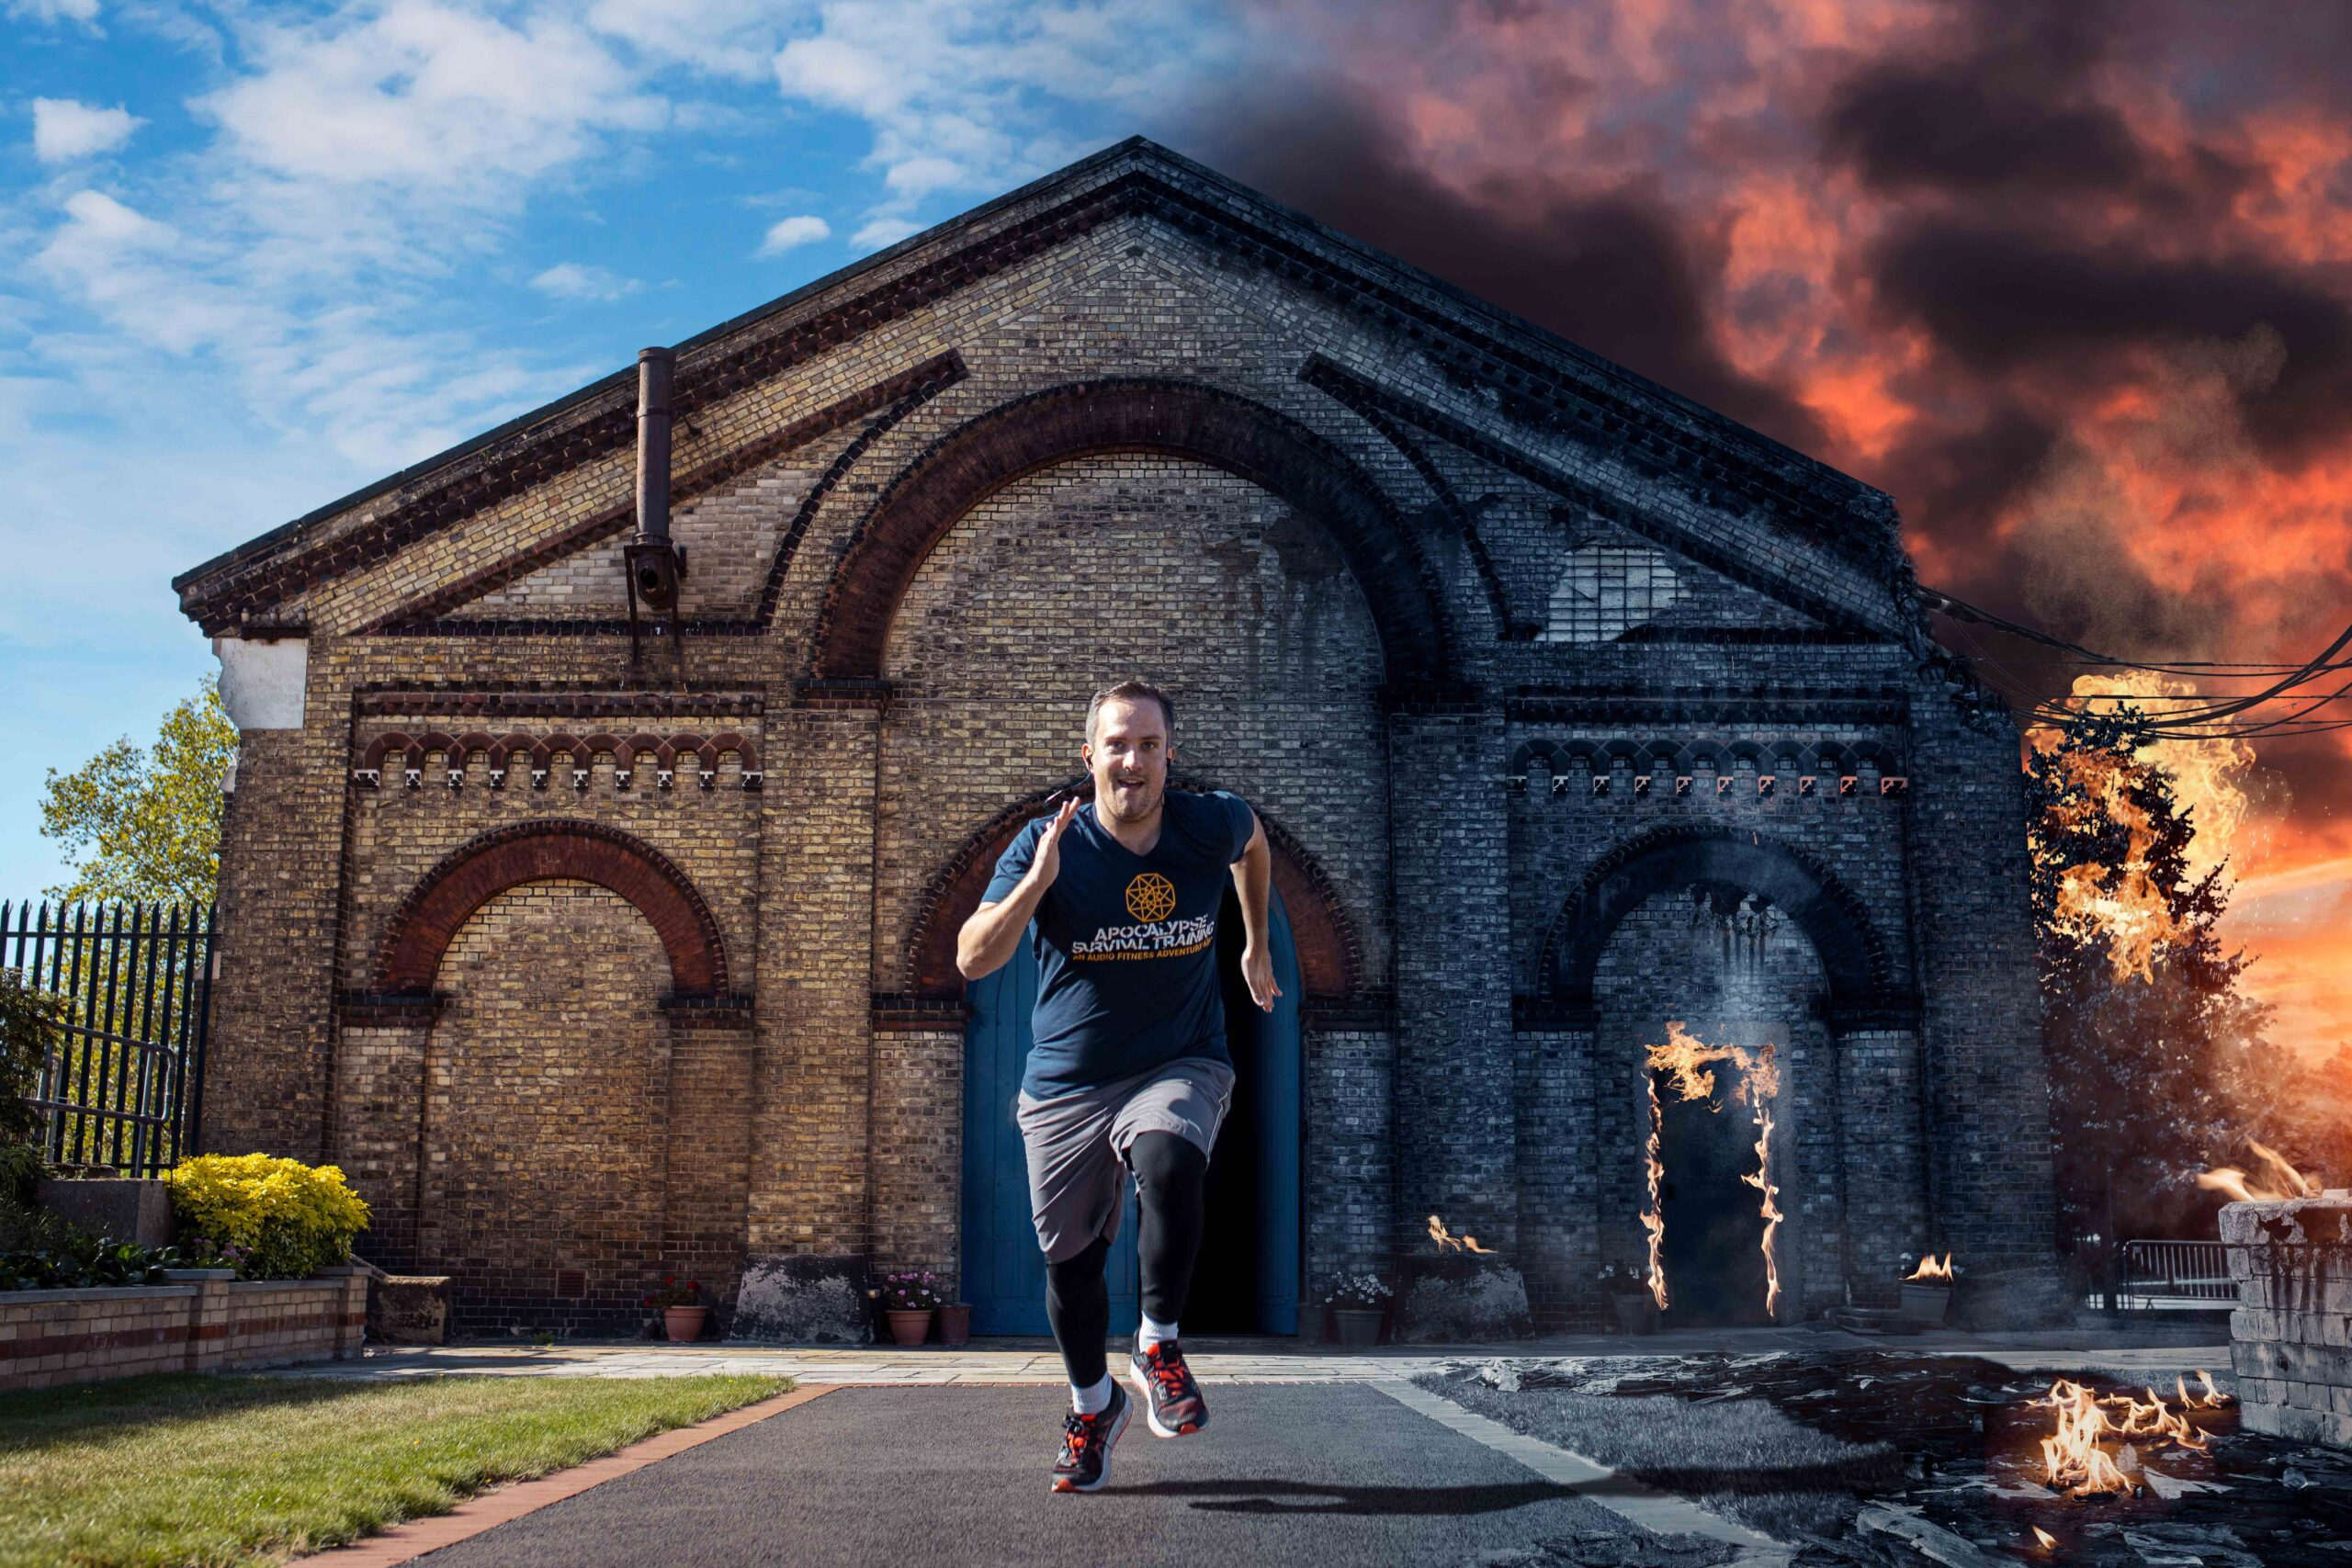 audio fitness trends boom as this unique adventure fitness app gets listeners training for an apocalypse